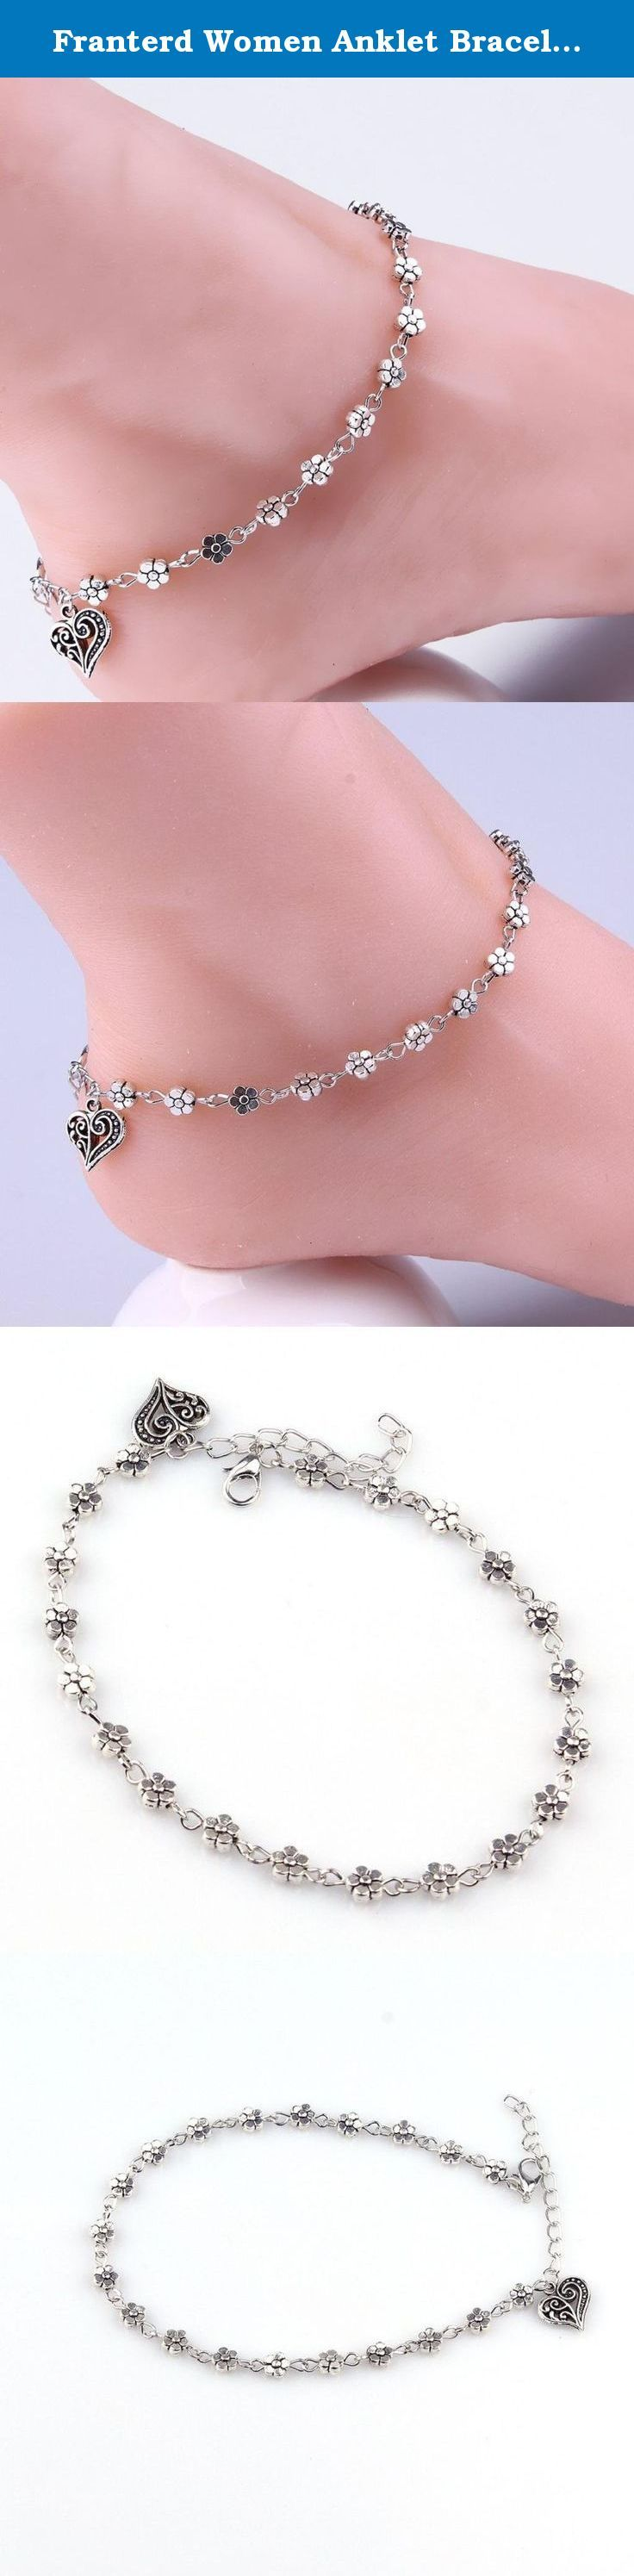 Franterd Women Anklet Bracelet Barefoot Sandal Beach Foot Silver Bead Chain. Feature: 100% brand new and high quality. Quantity: 1PC Wonderful gift for you and your female friends Catch this beautiful accessories for you Package Include: 1X Anklet (Without retail package).